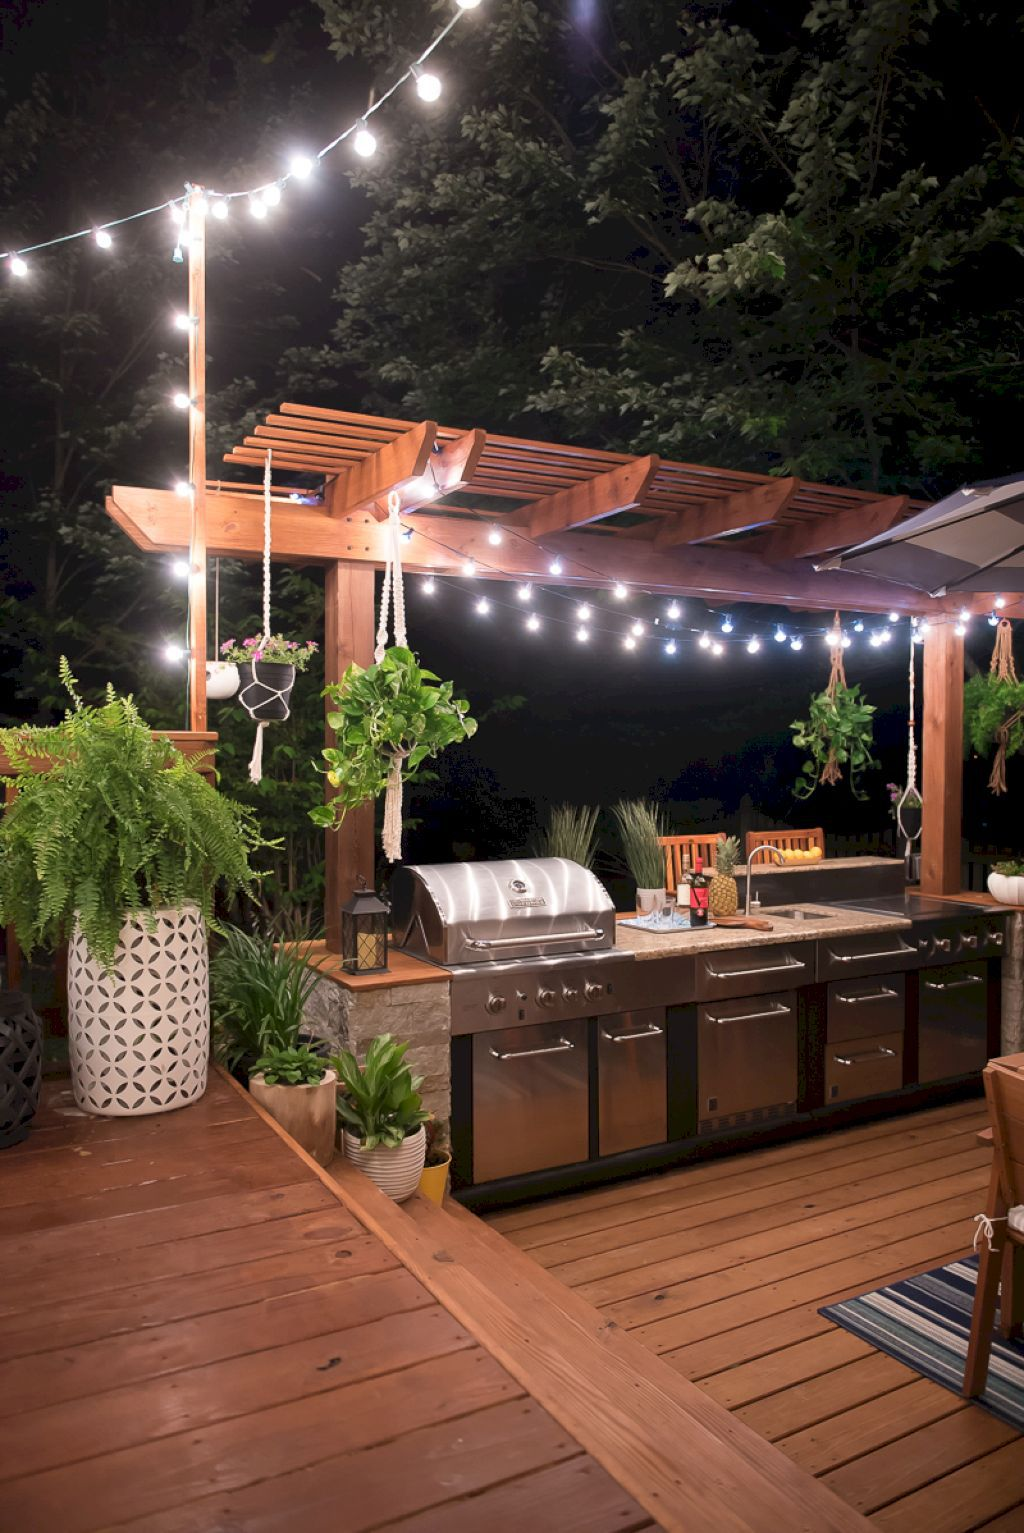 diy outdoor kitchen ideas 30 best outdoor kitchen design ideas 17389